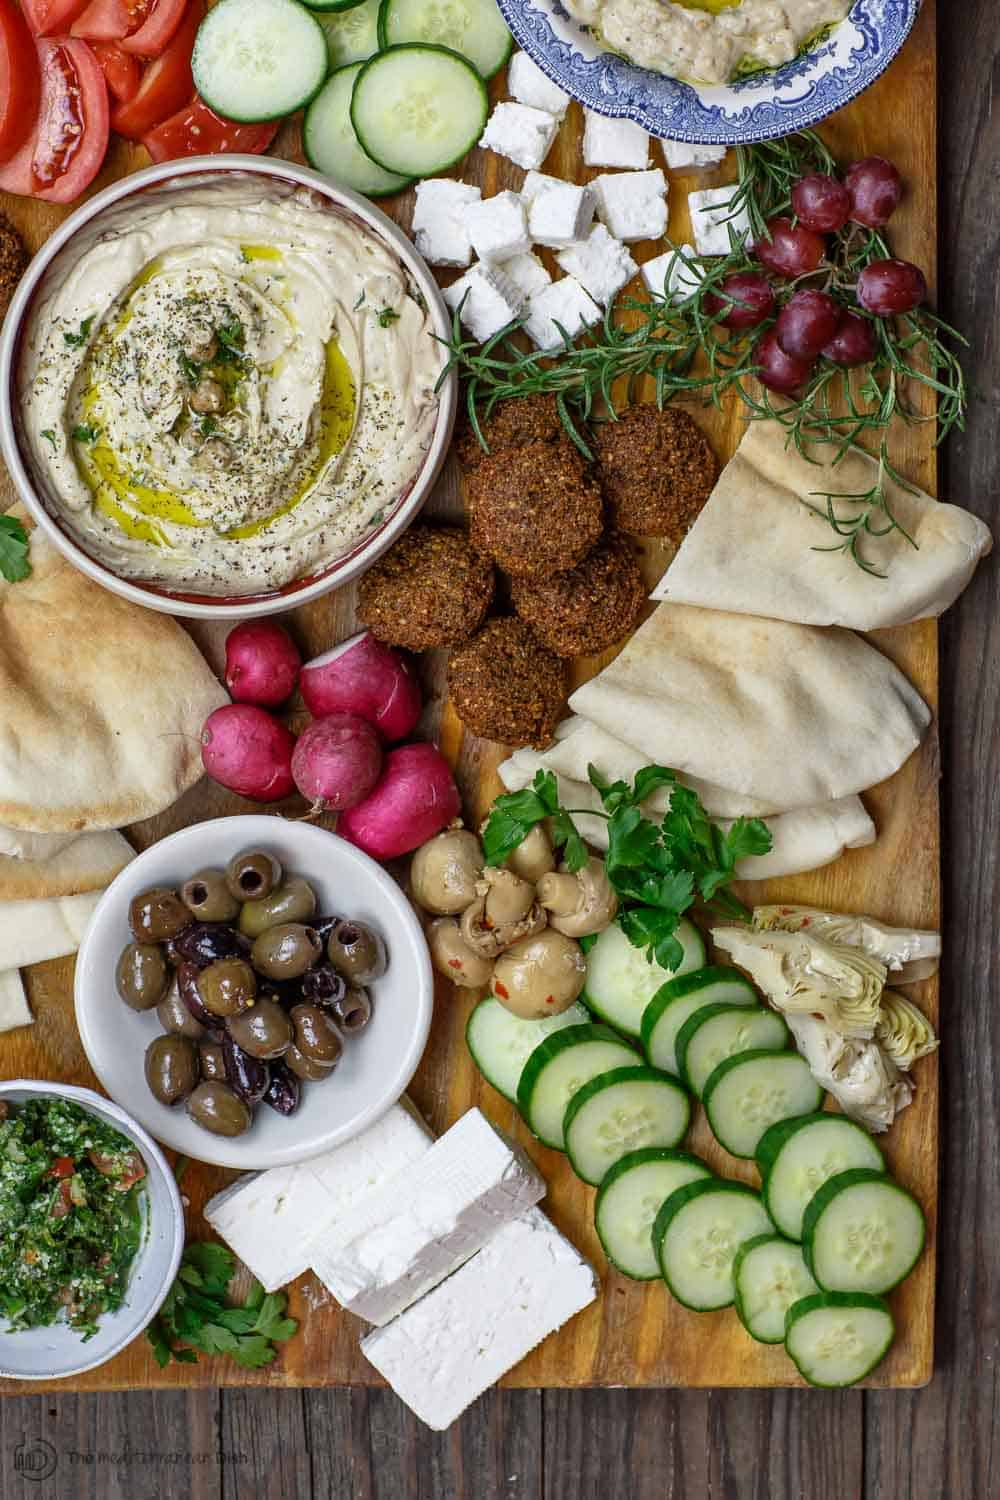 Mediterranean breakfast or brunch with falafel, hummus, baba ganoush,fresh vegetables and more